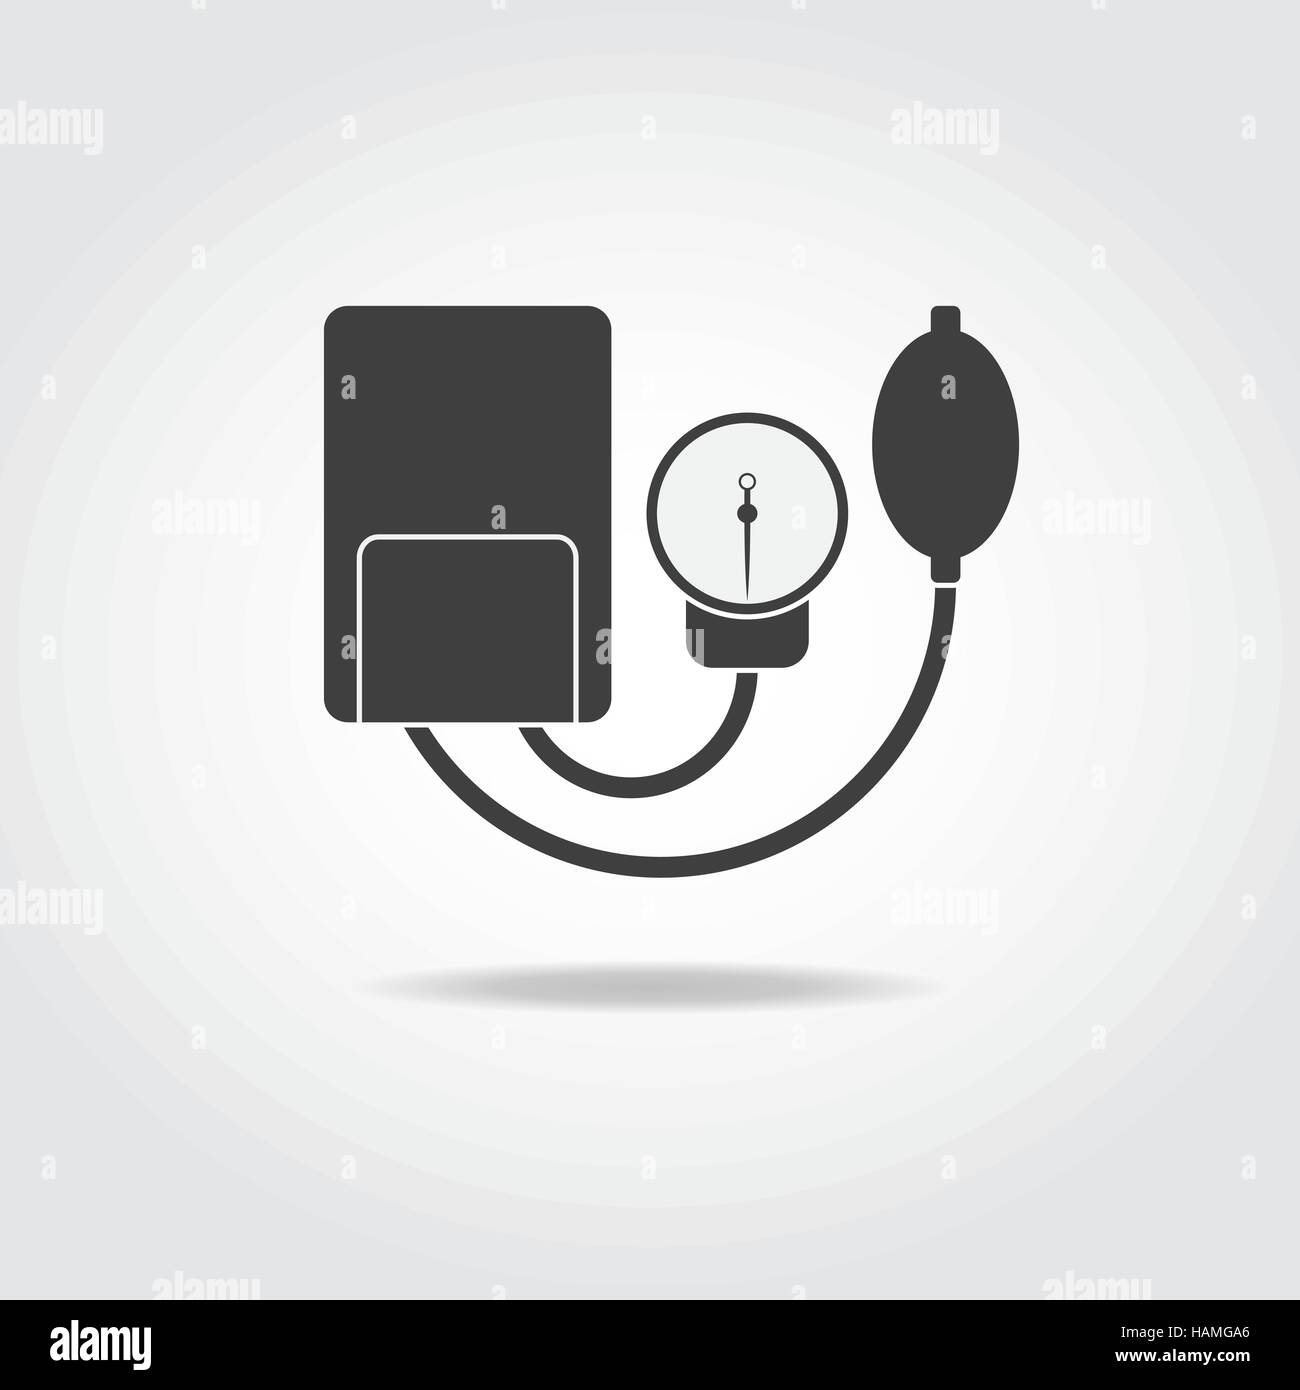 Simple black icon of analog tonometer with punching bag. - Stock Vector